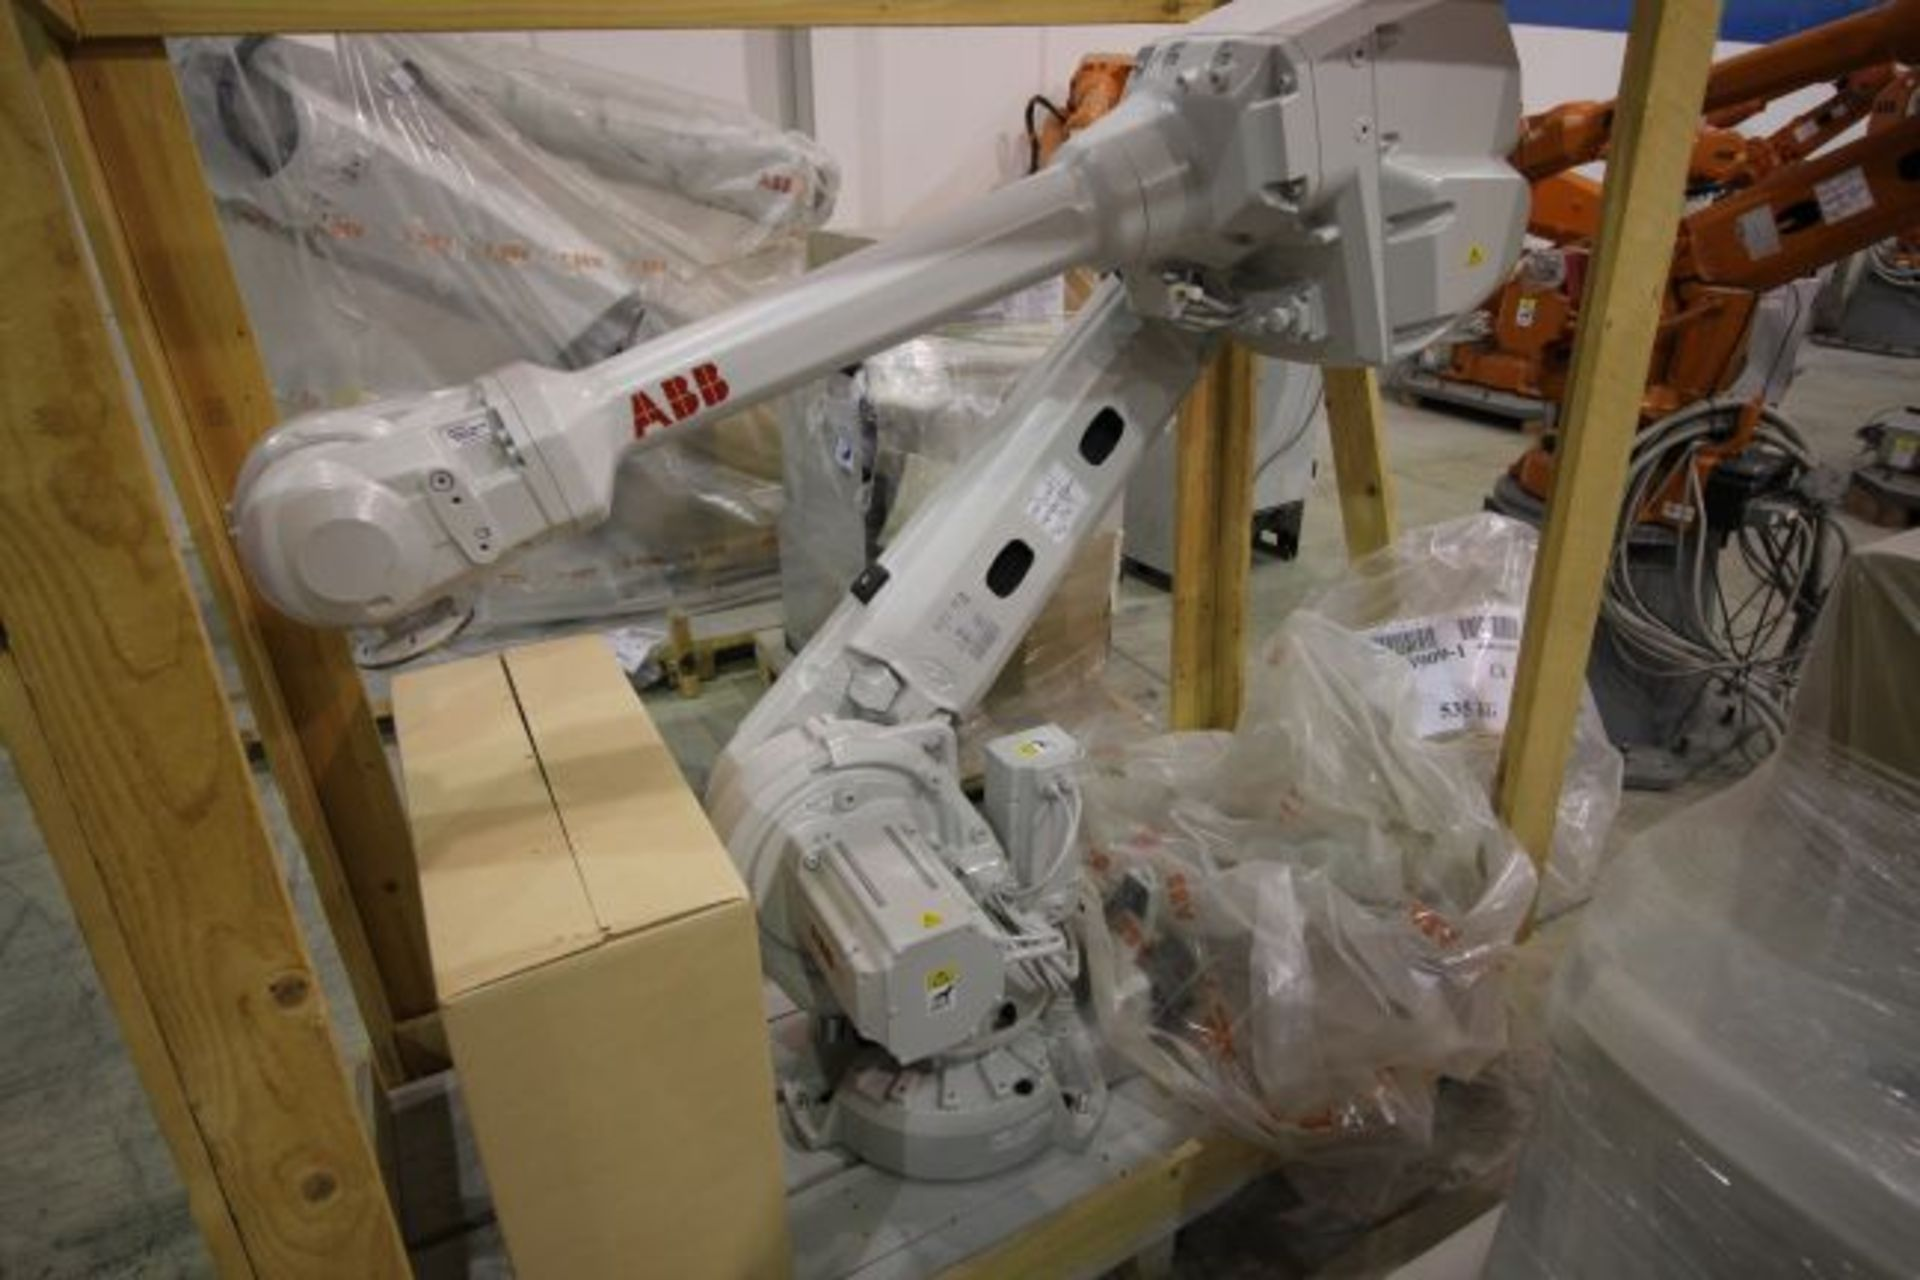 (NEW) ABB ROBOT IRB 4600 2.55/40KG WITH IRC5 CONTROLS, YEAR 2014, SN 101900 TEACH PENDANT& CABLES - Image 2 of 9